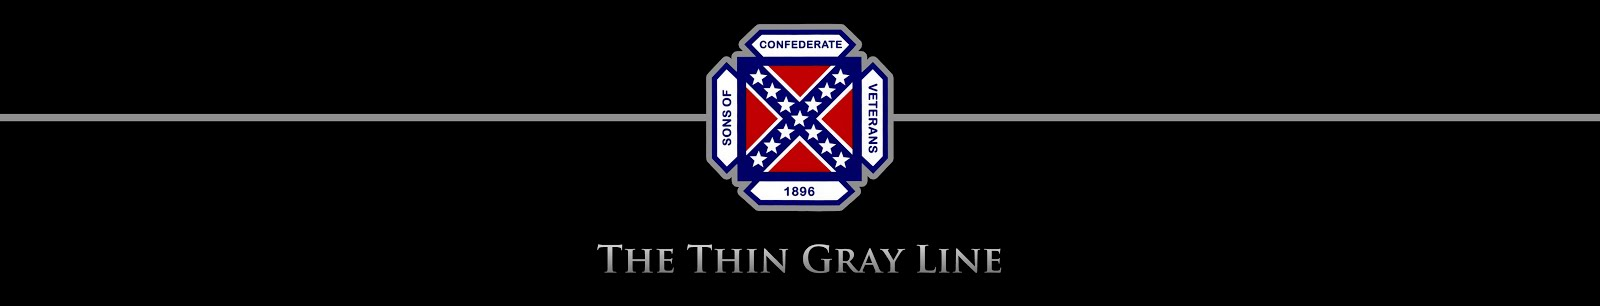 **THE LAST LINE OF DEFENSE FOR OUR CONFEDERATE HERITAGE**